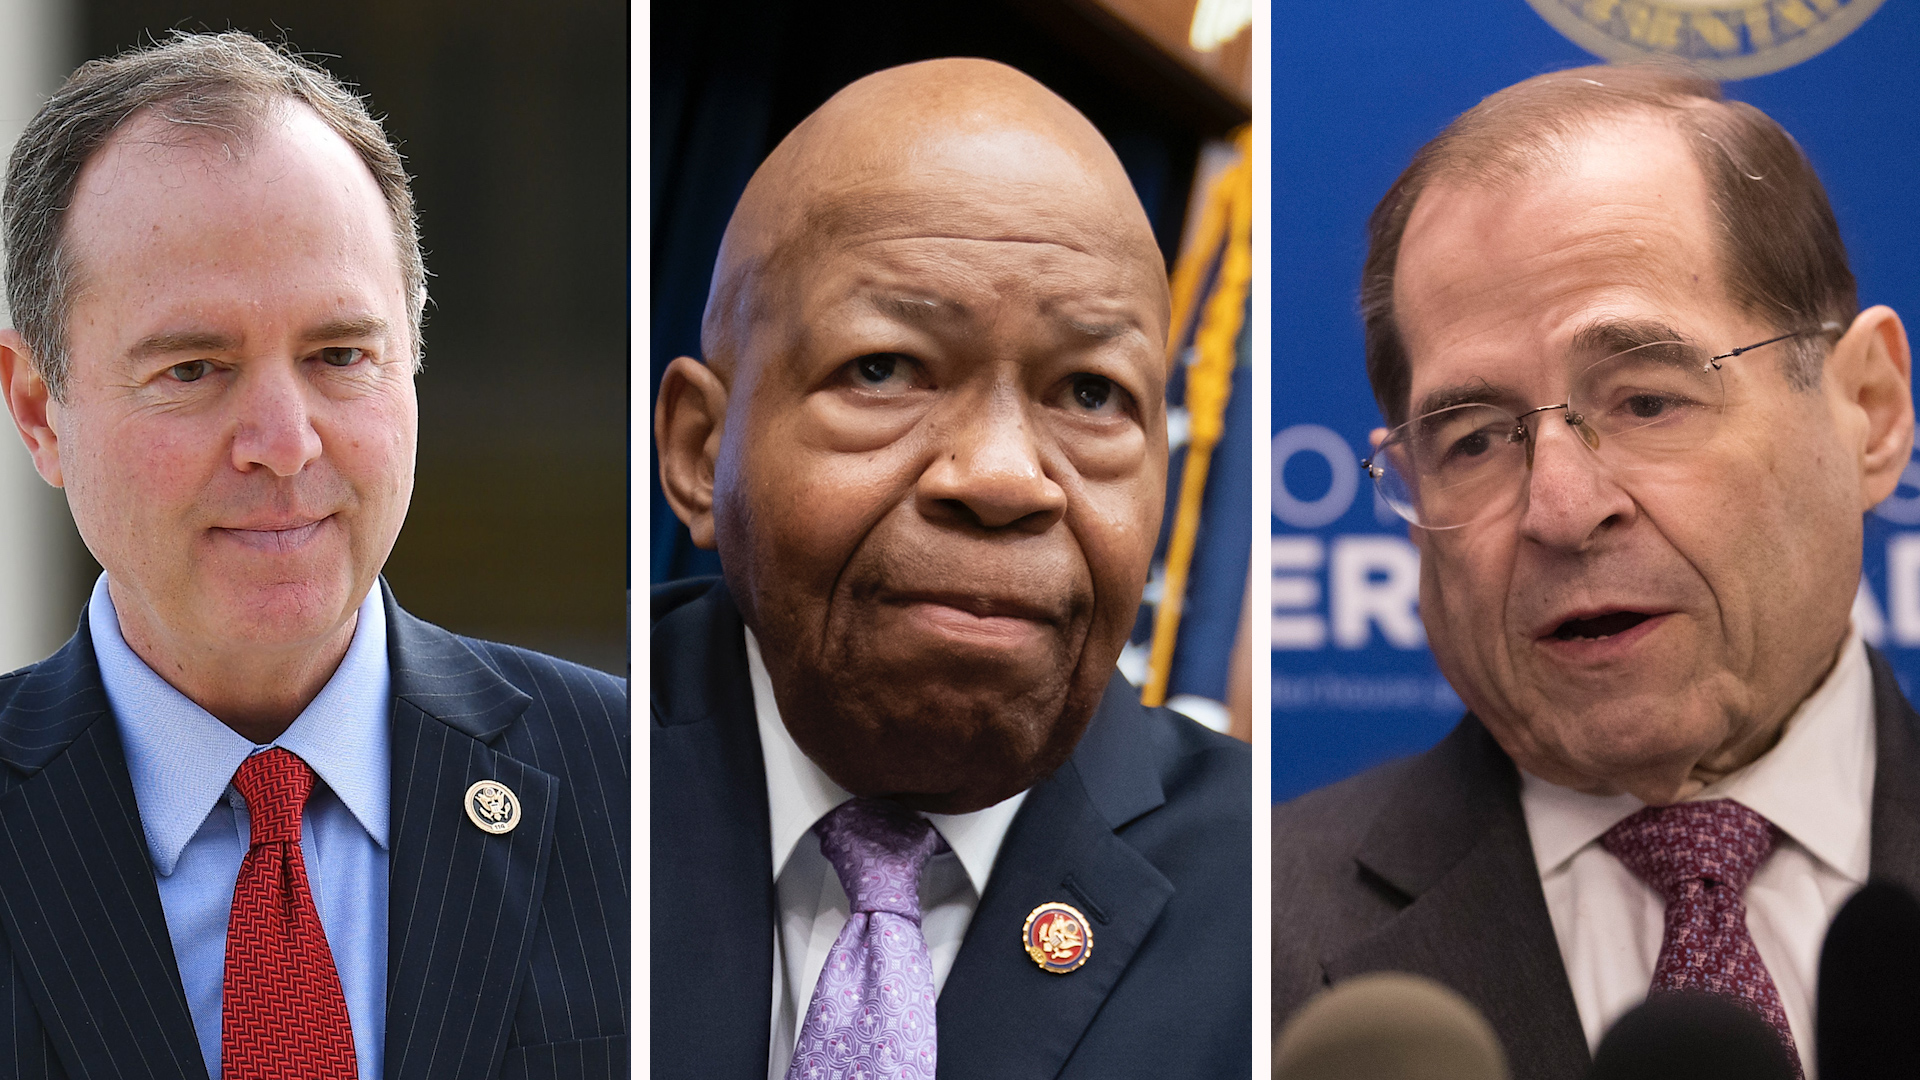 After Mueller report, Democrats divided over end game — investigate Trump or impeach